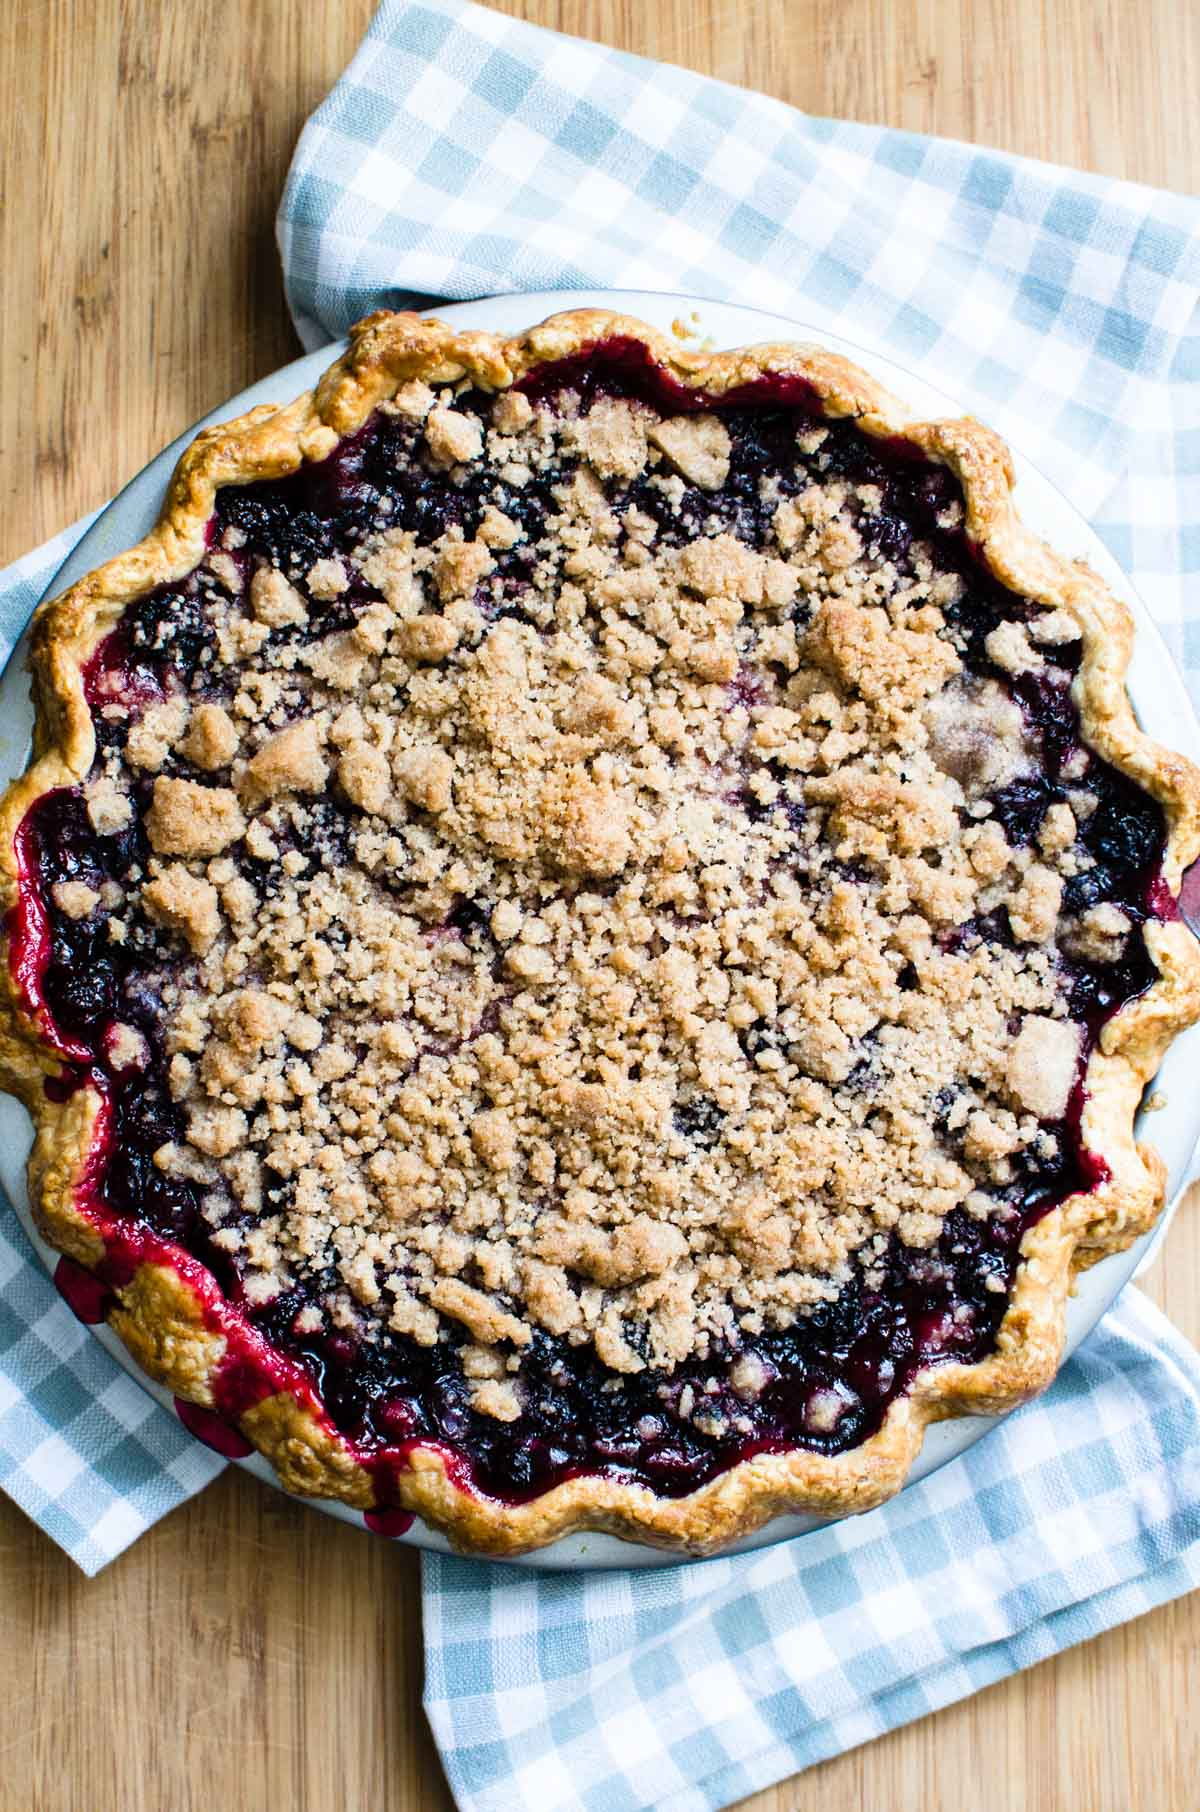 This mixed berry crumble pie is dripping with summer flavor - perfect for serving at a picnic with homemade vanilla ice cream!